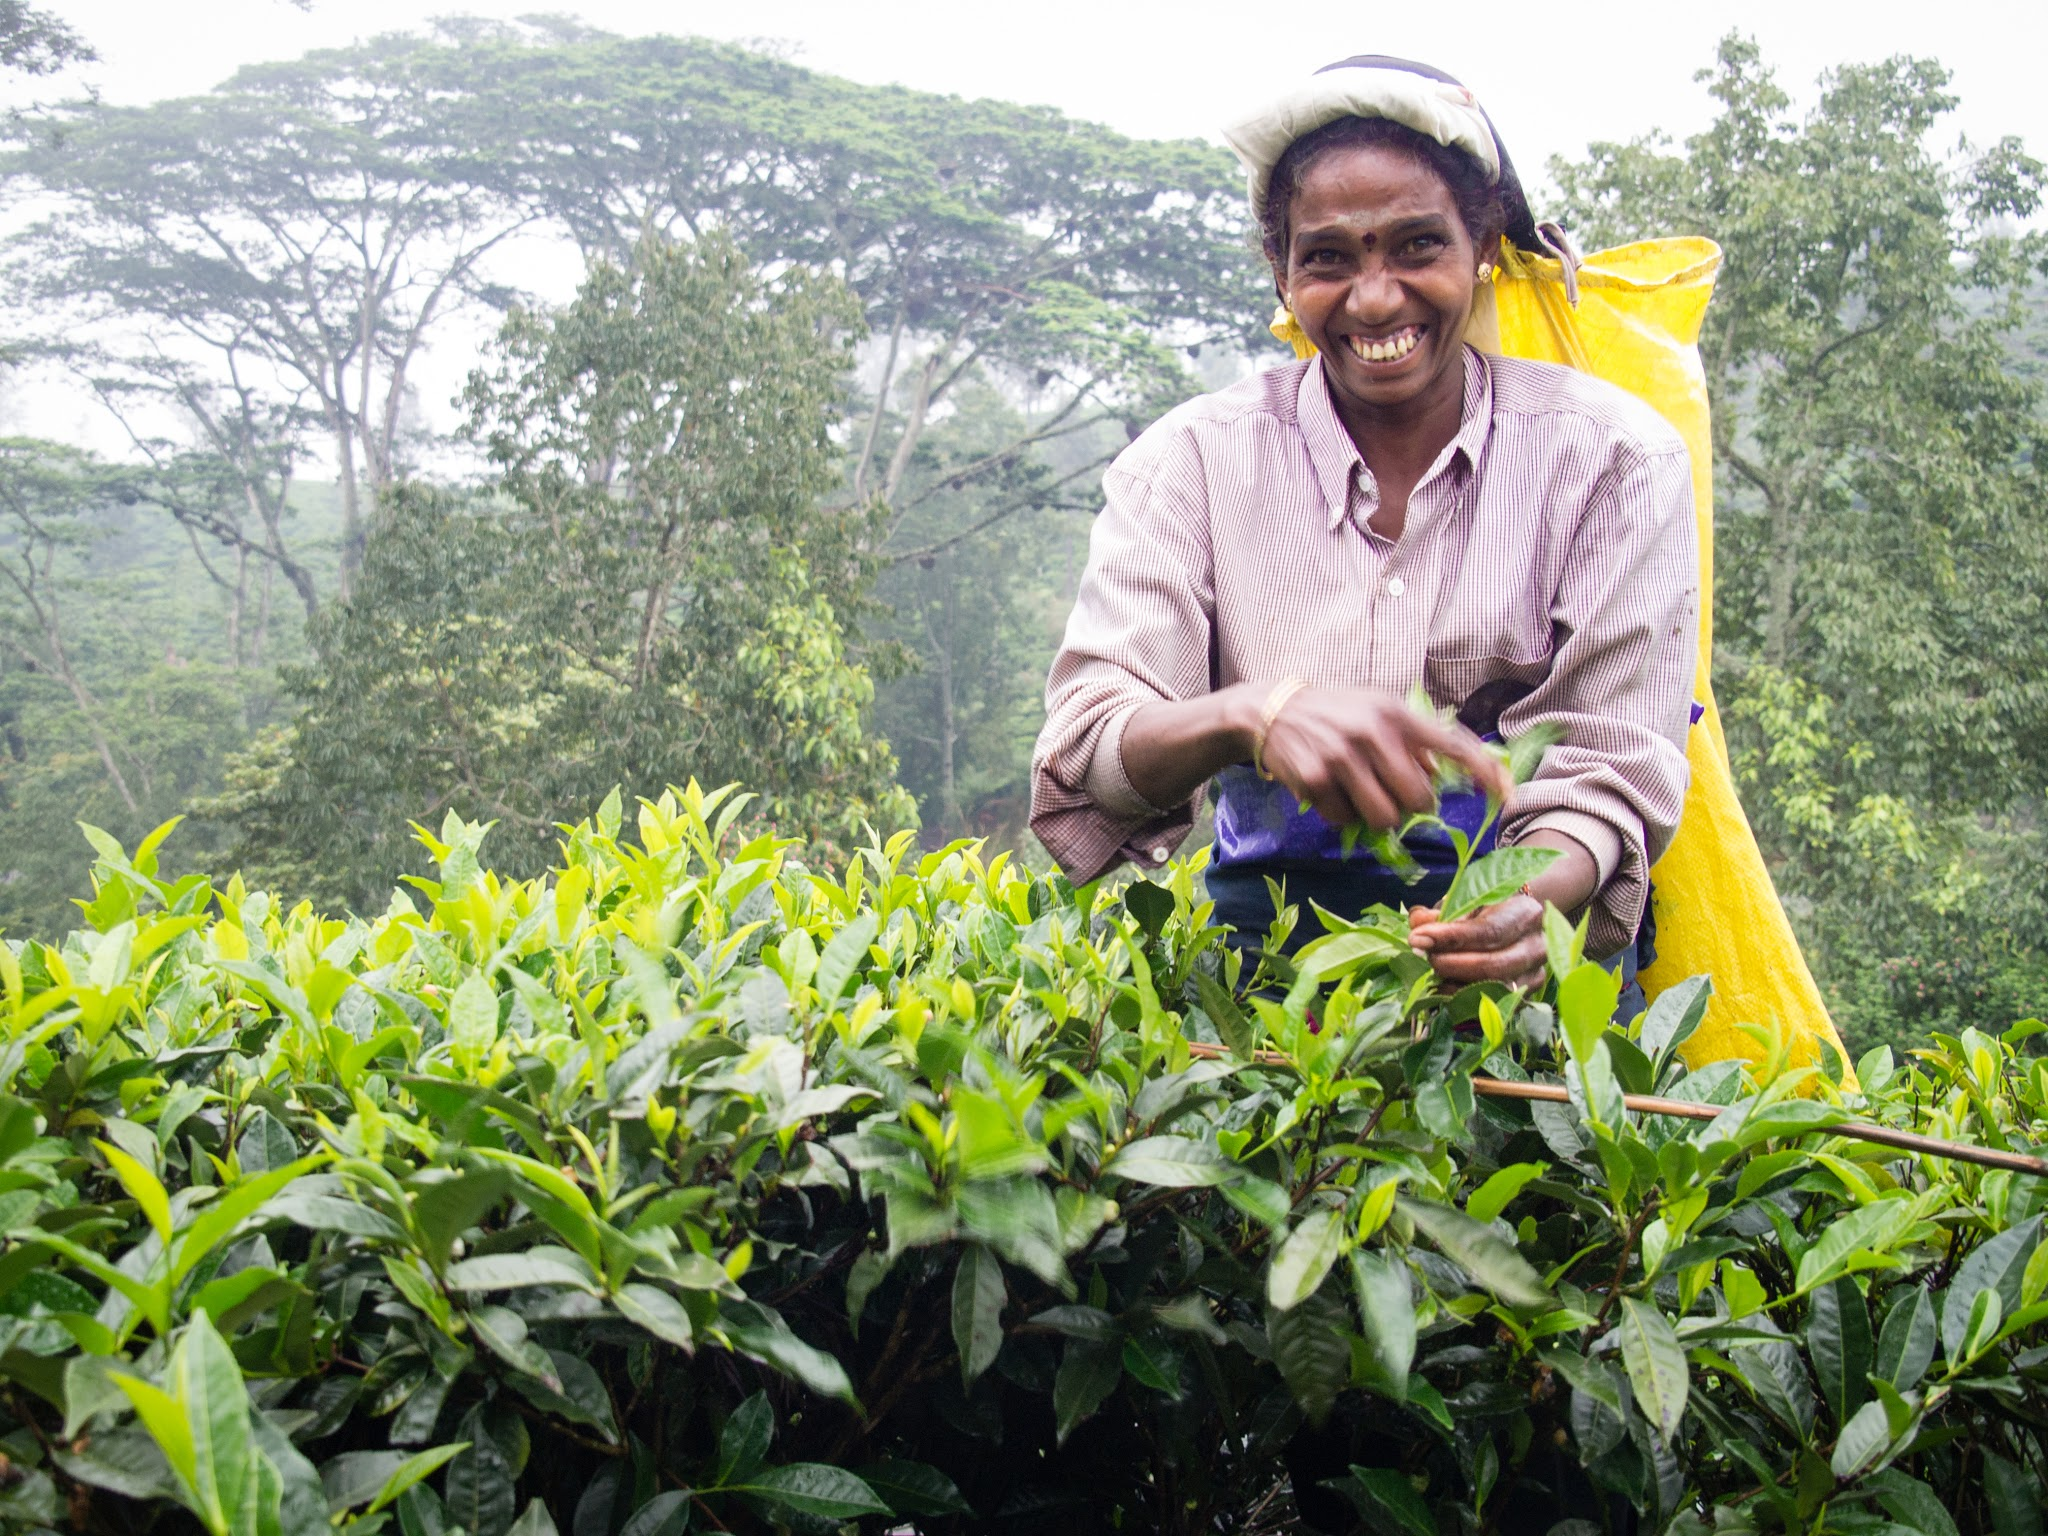 tea picker in Sri Lanka's hill country